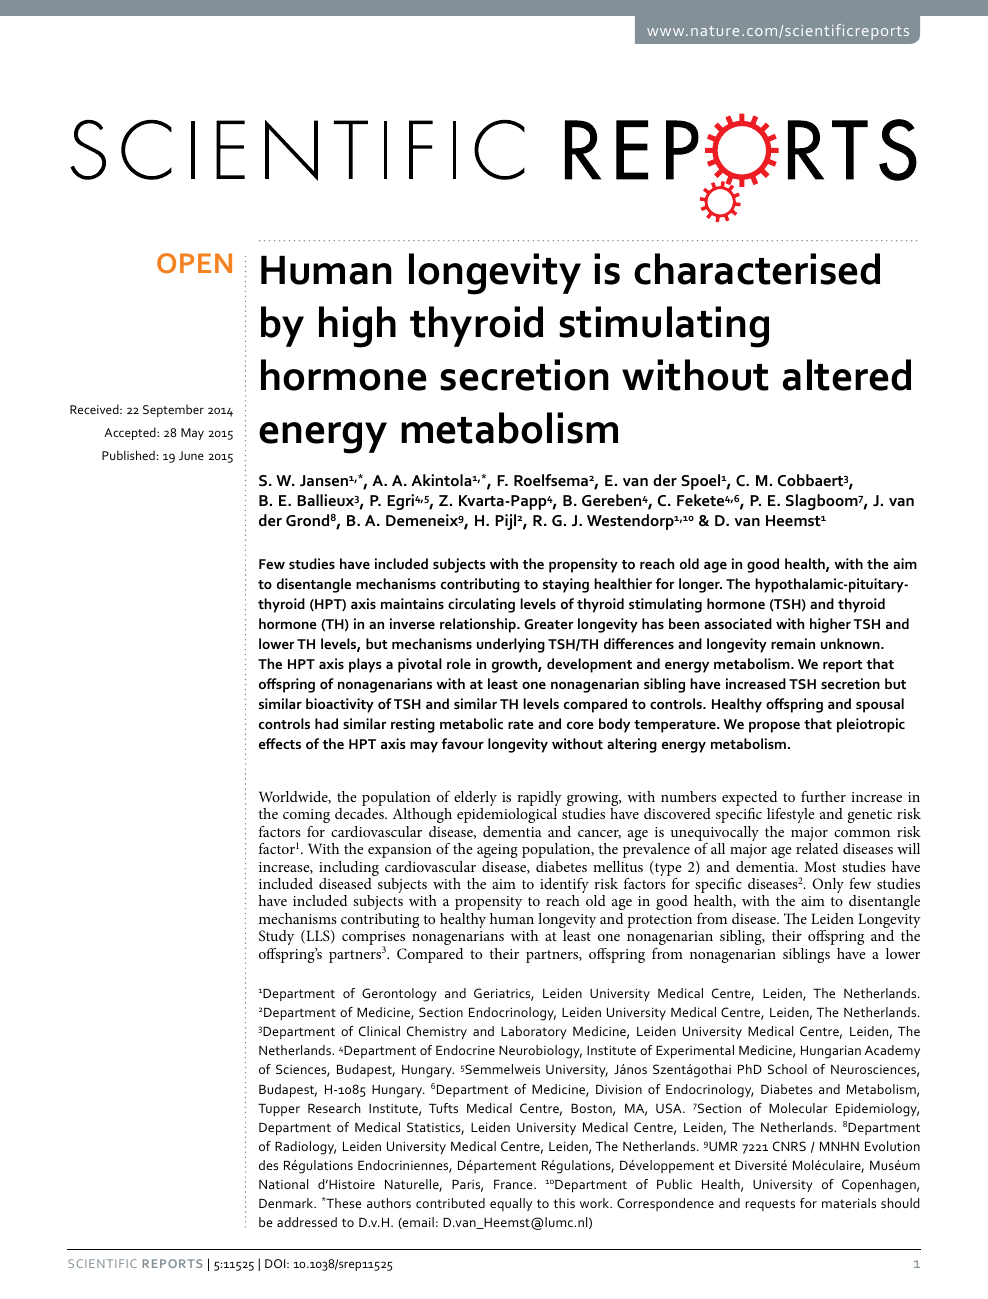 Human longevity is characterised by high thyroid stimulating